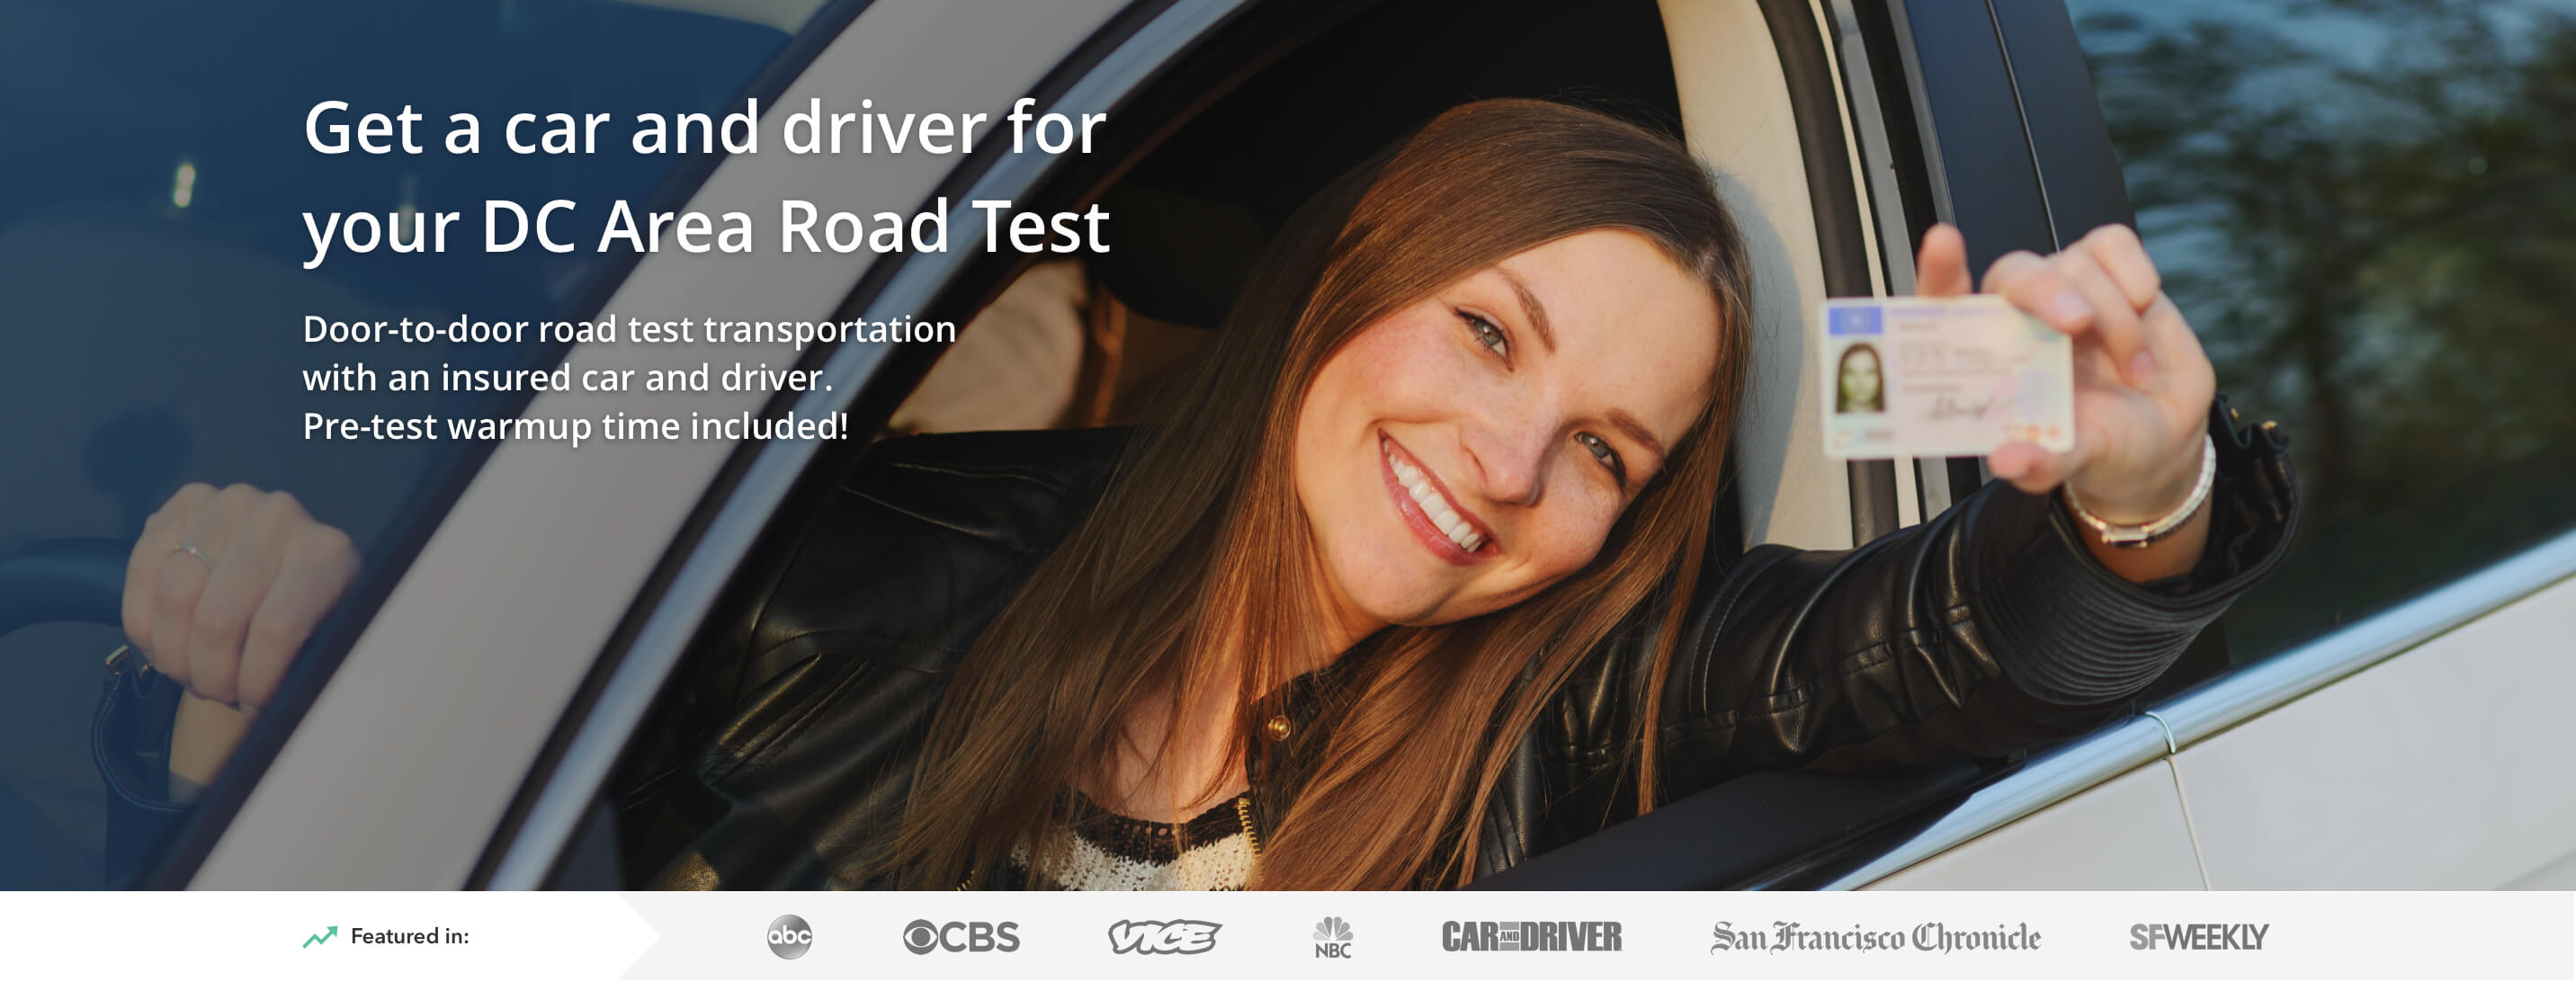 Get a car and driver for your Washington DC road test